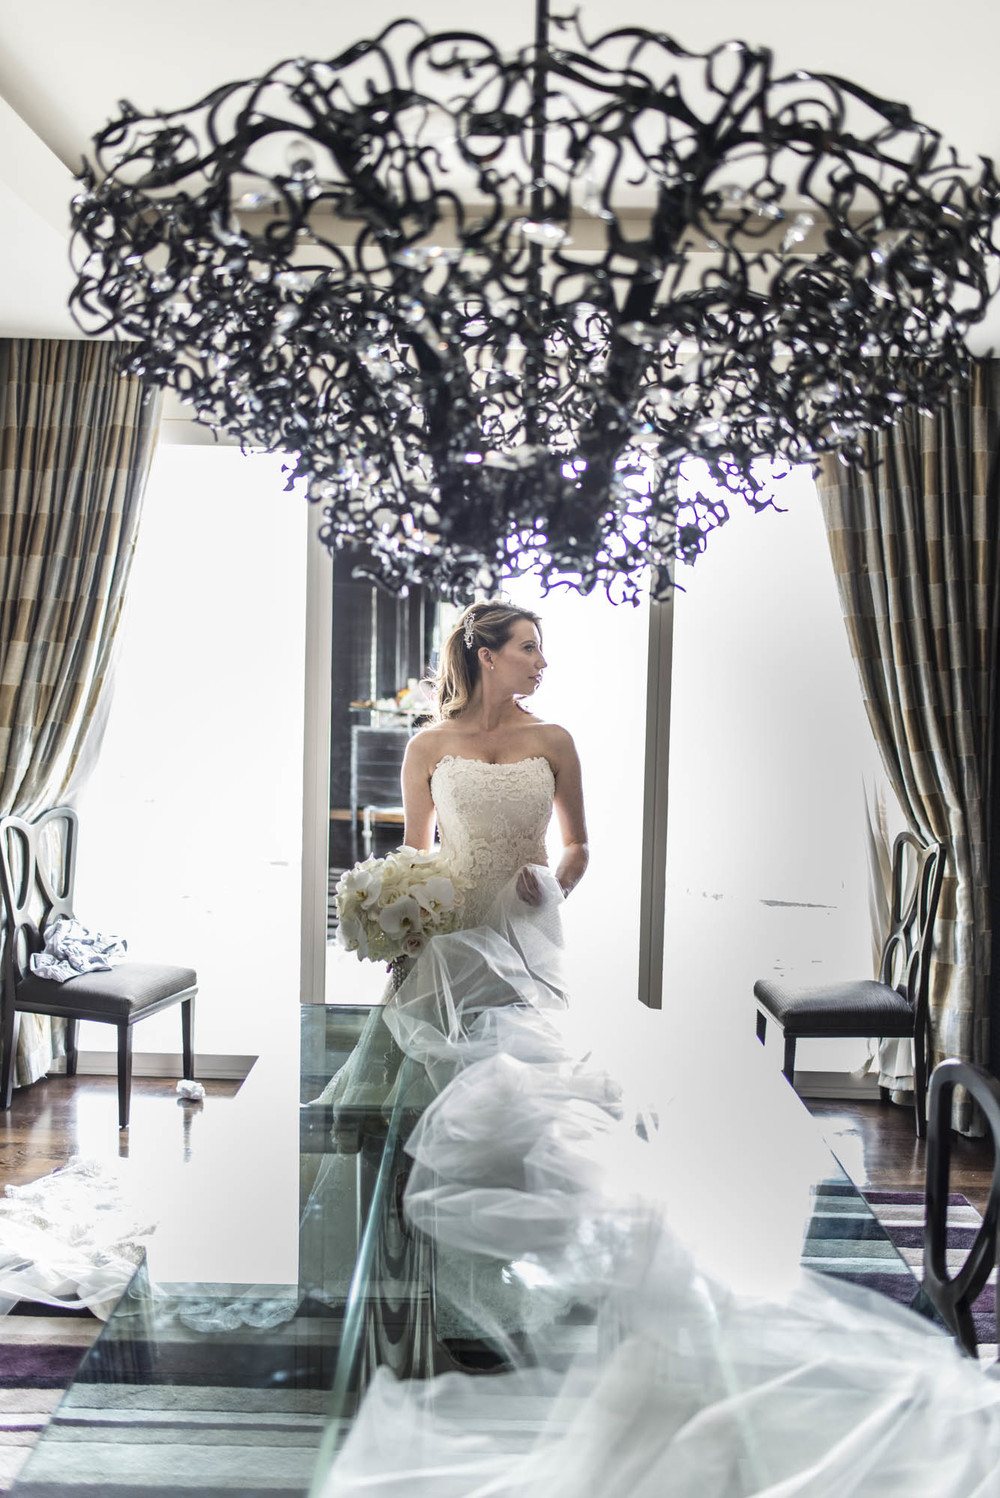 Bridal Portrait at Mandarin Oriental.  CREATIVE PARTNERS: PHOTOGRAPHY • AltF Photography, PLANNING • Andrea Eppolito Events, FLORAL AND DECOR DESIGN •Destinations by Design, VENUE AND CATERING • Mandarin Oriental, Las Vegas, STATIONERY DESIGN • Paper and Home, BRIDE'S GOWN • Vera Wang, SHOES • Jimmy Choo, GROOM'S FORMAL WEAR • Vera Wang, ENGAGEMENT RING • Delage Jewelers, WEDDING BANDS • T-Birds Jewels, CAKE DESIGN • Mandarin Oriental Las Vegas, DRAPING; DANCE FLOOR DESIGN AND PRODUCTION • Destination by Design, LIVE EVENT ARTIST • Sam Day, ENTERTAINMENT • Lucky Devils Band, CINEMATOGRAPHY • Something New